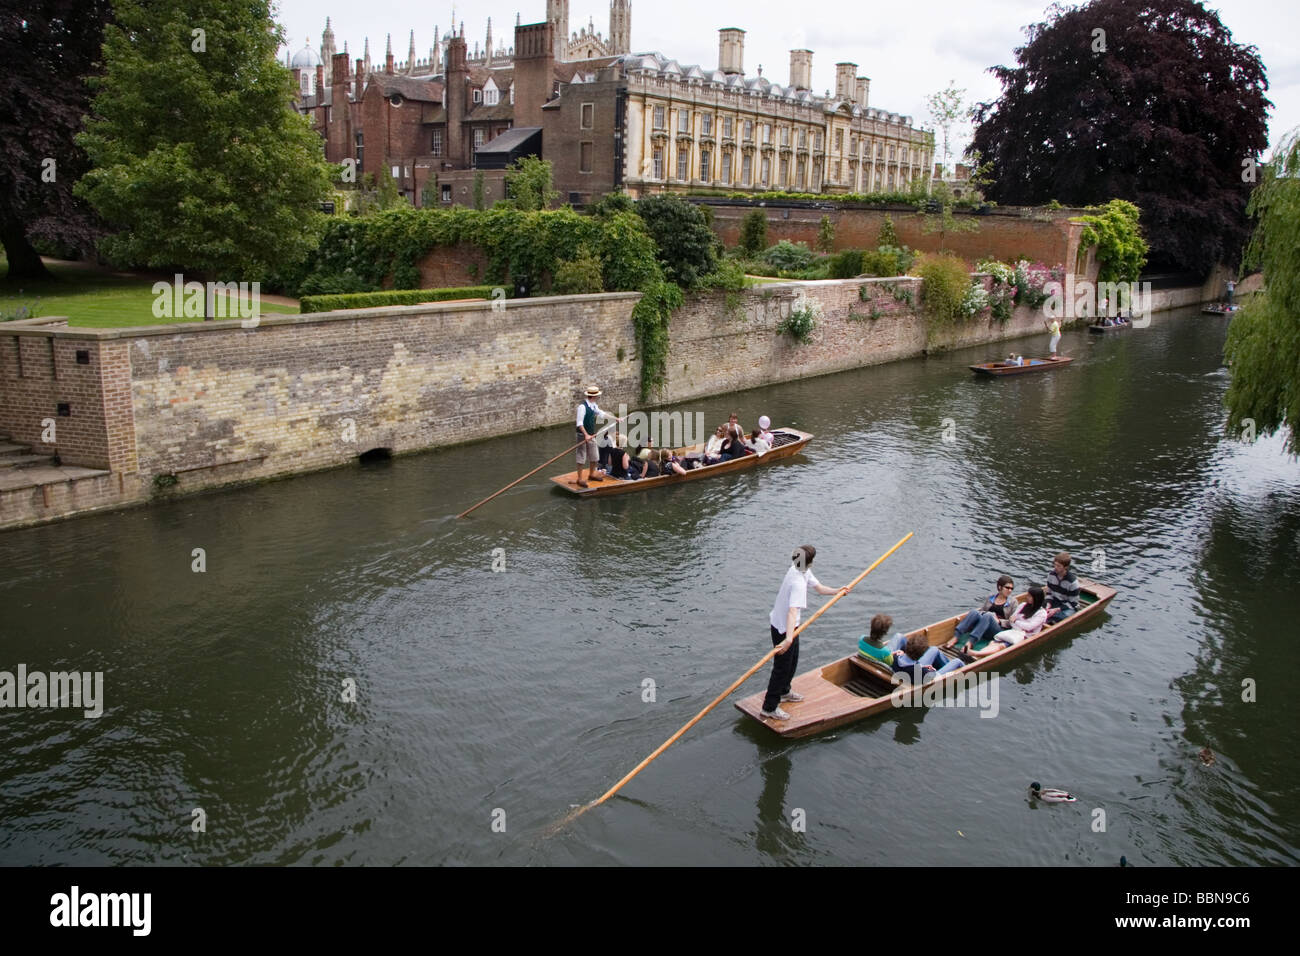 Punts on the River Cam at Cambridge, UK: June 2009 - Stock Image